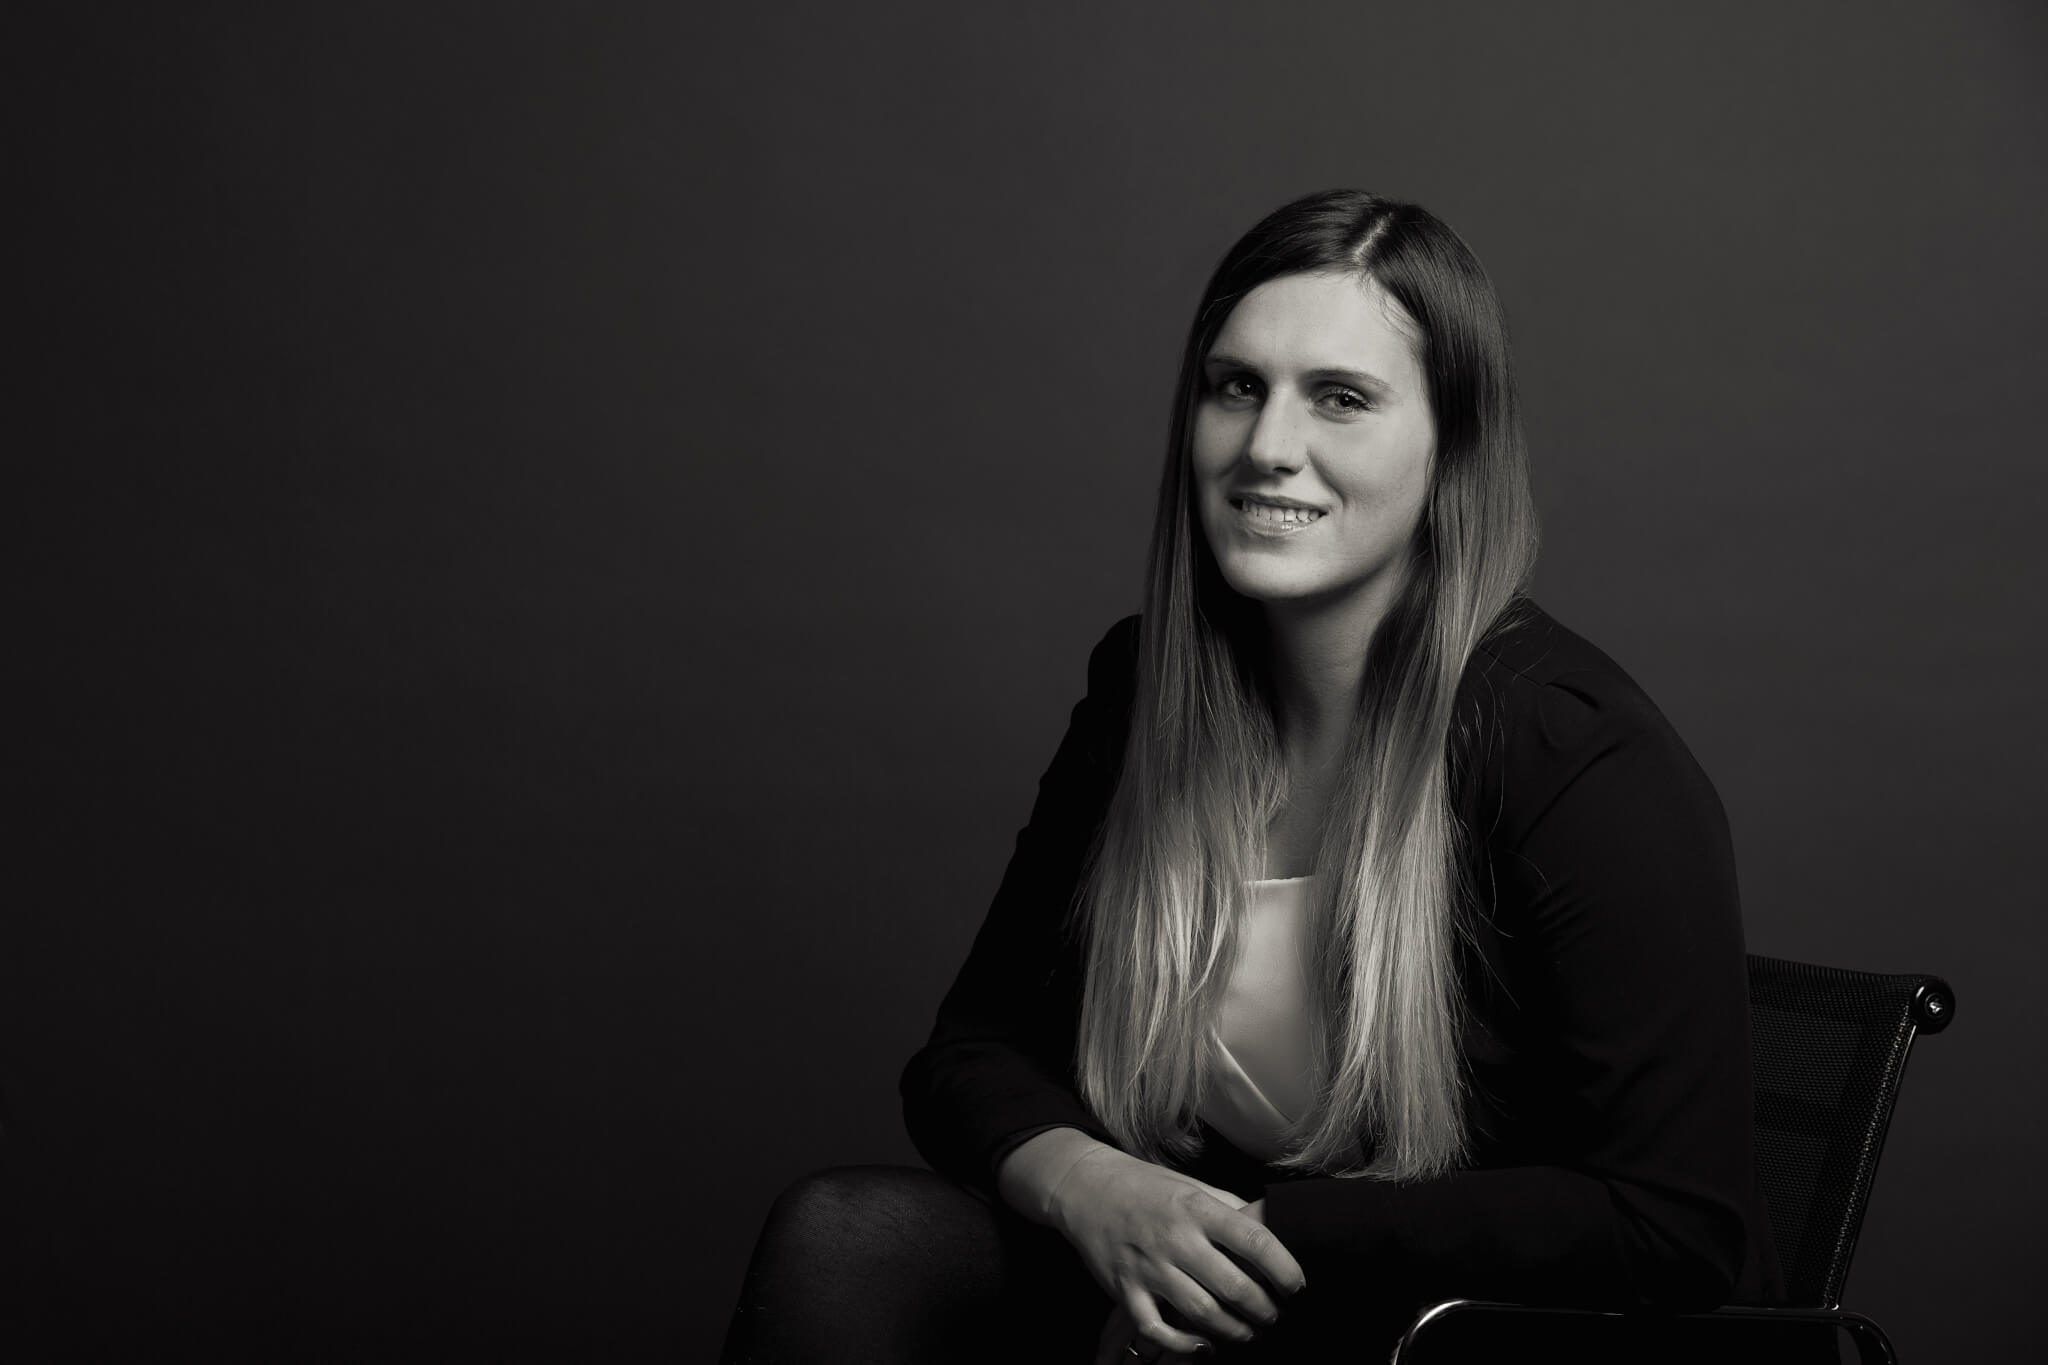 Leah Caprani is a finalist in The National Paralegal Awards 2019